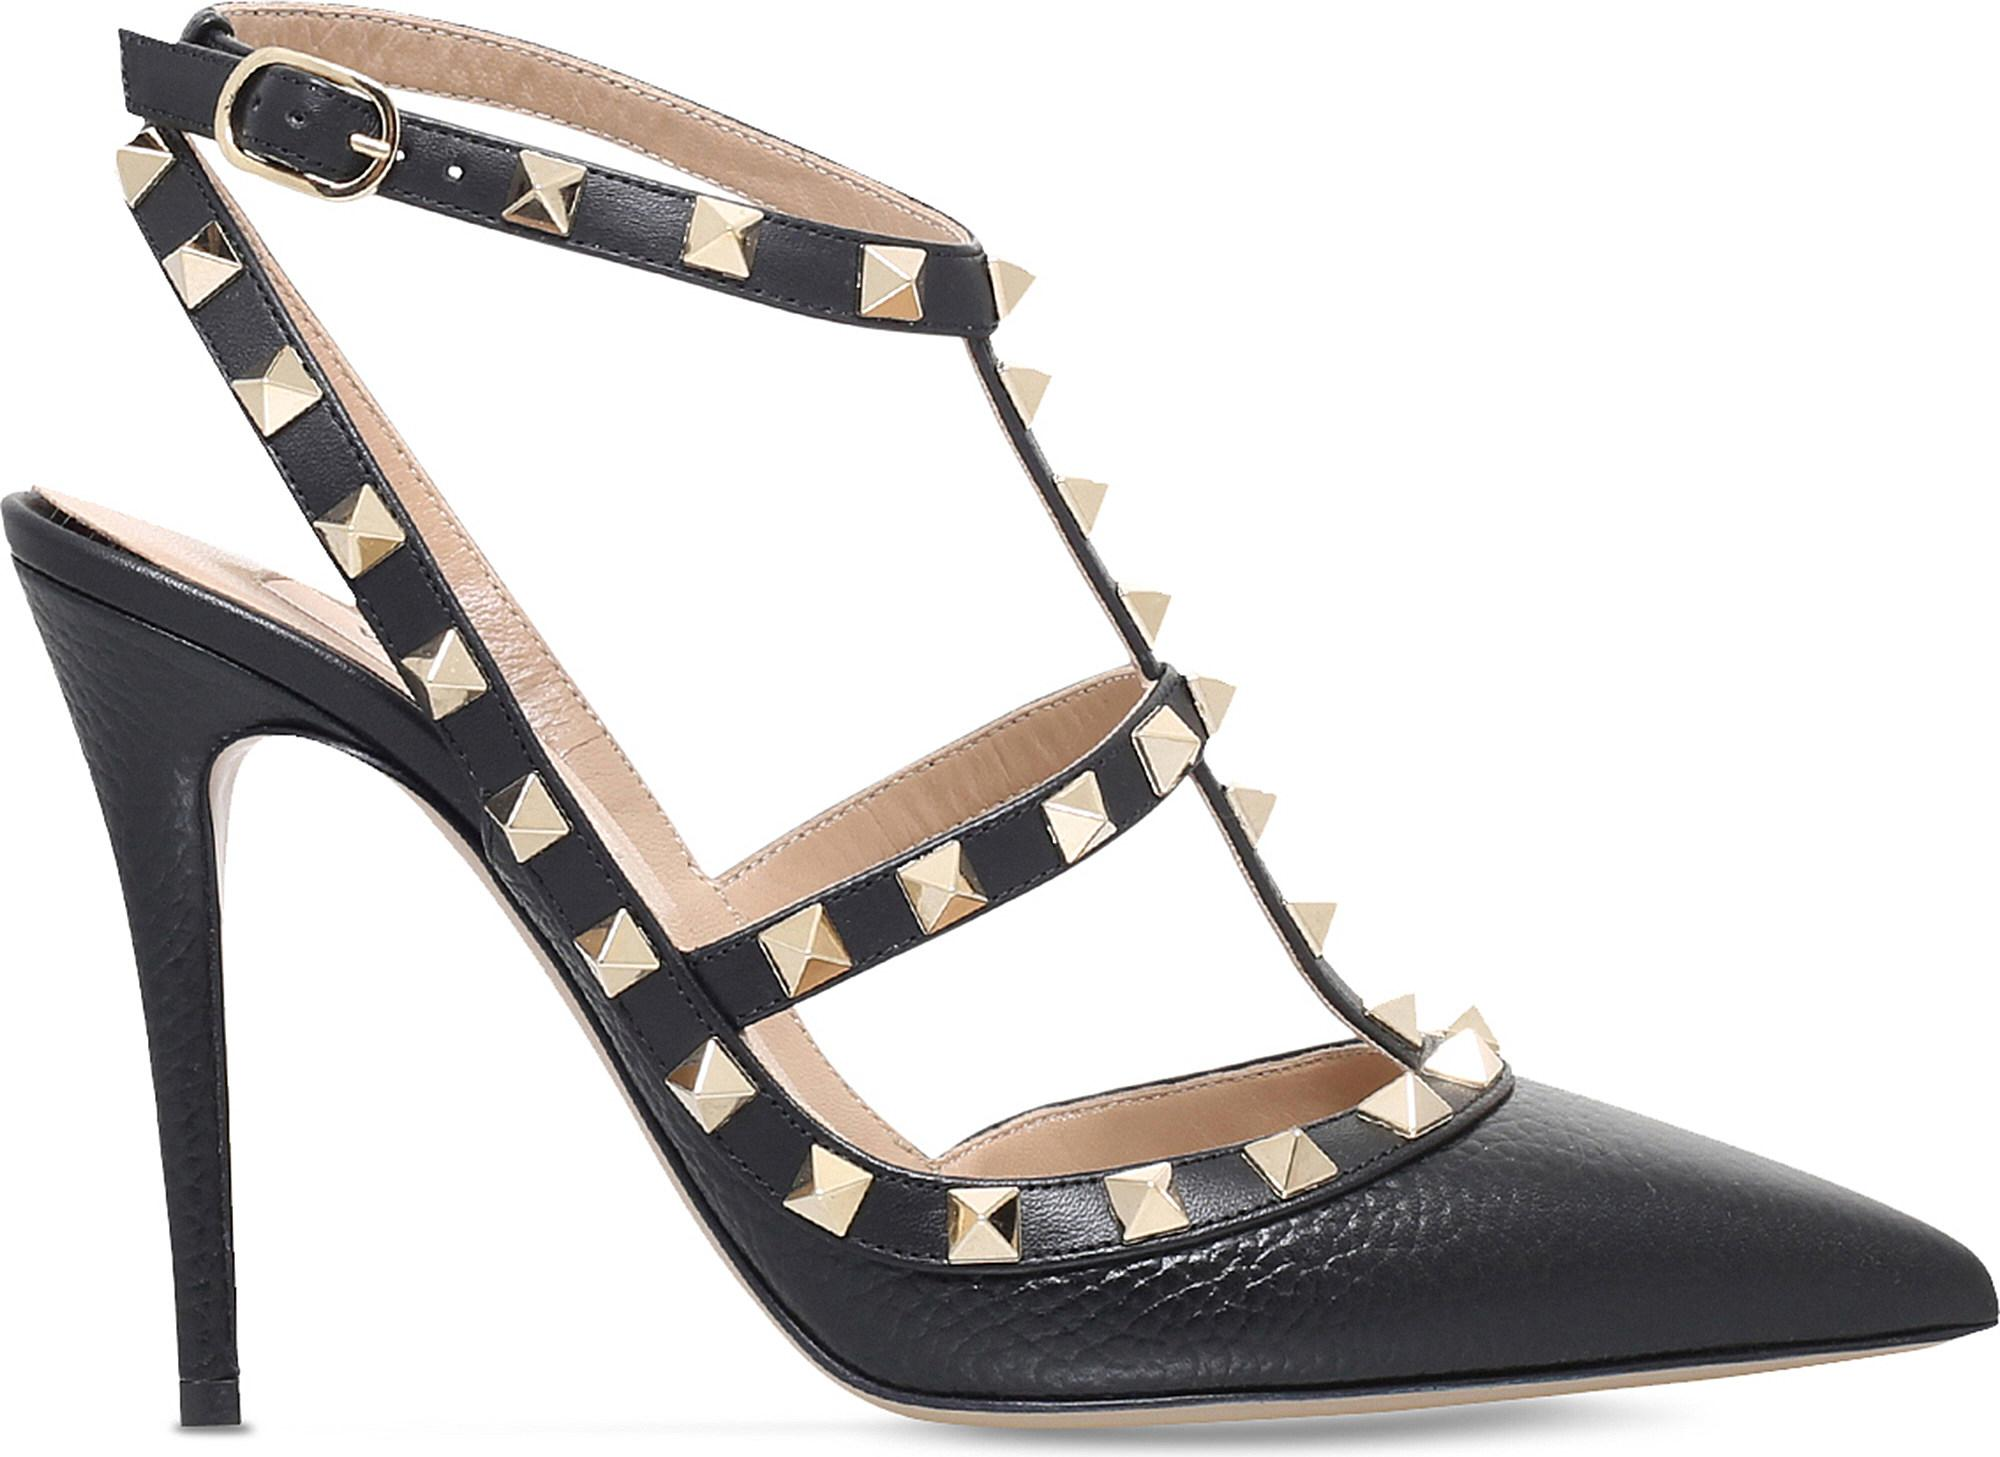 92f2626e6f5dc Lyst - Valentino Rockstud 100 Leather Courts in Black - Save 13%